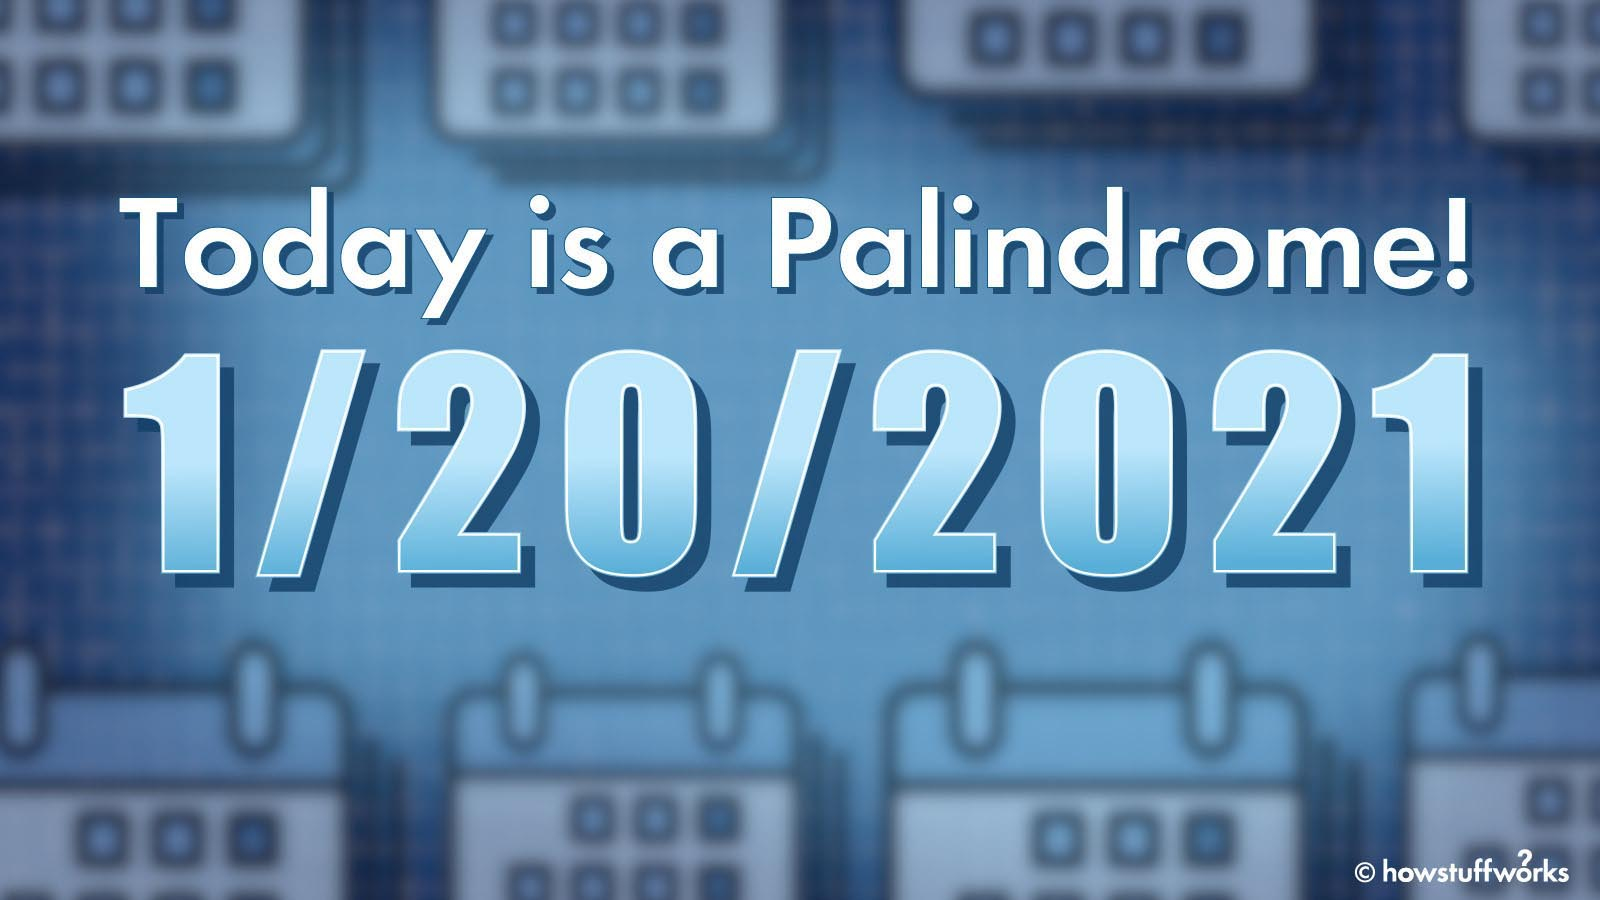 It's Inauguration Day: And It's a Palindrome!